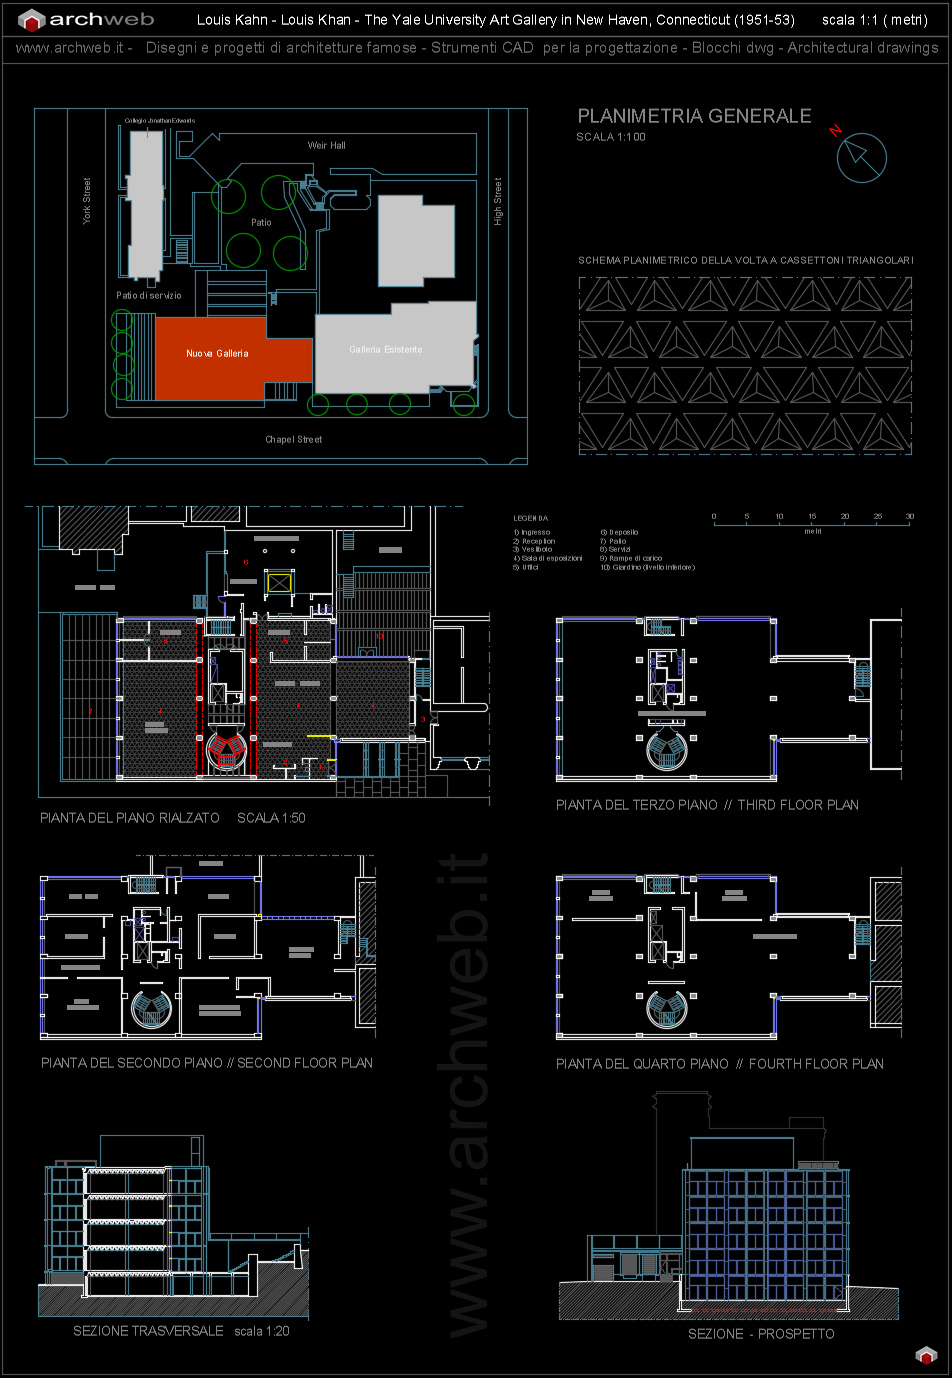 yale university art gallery autocad dwg